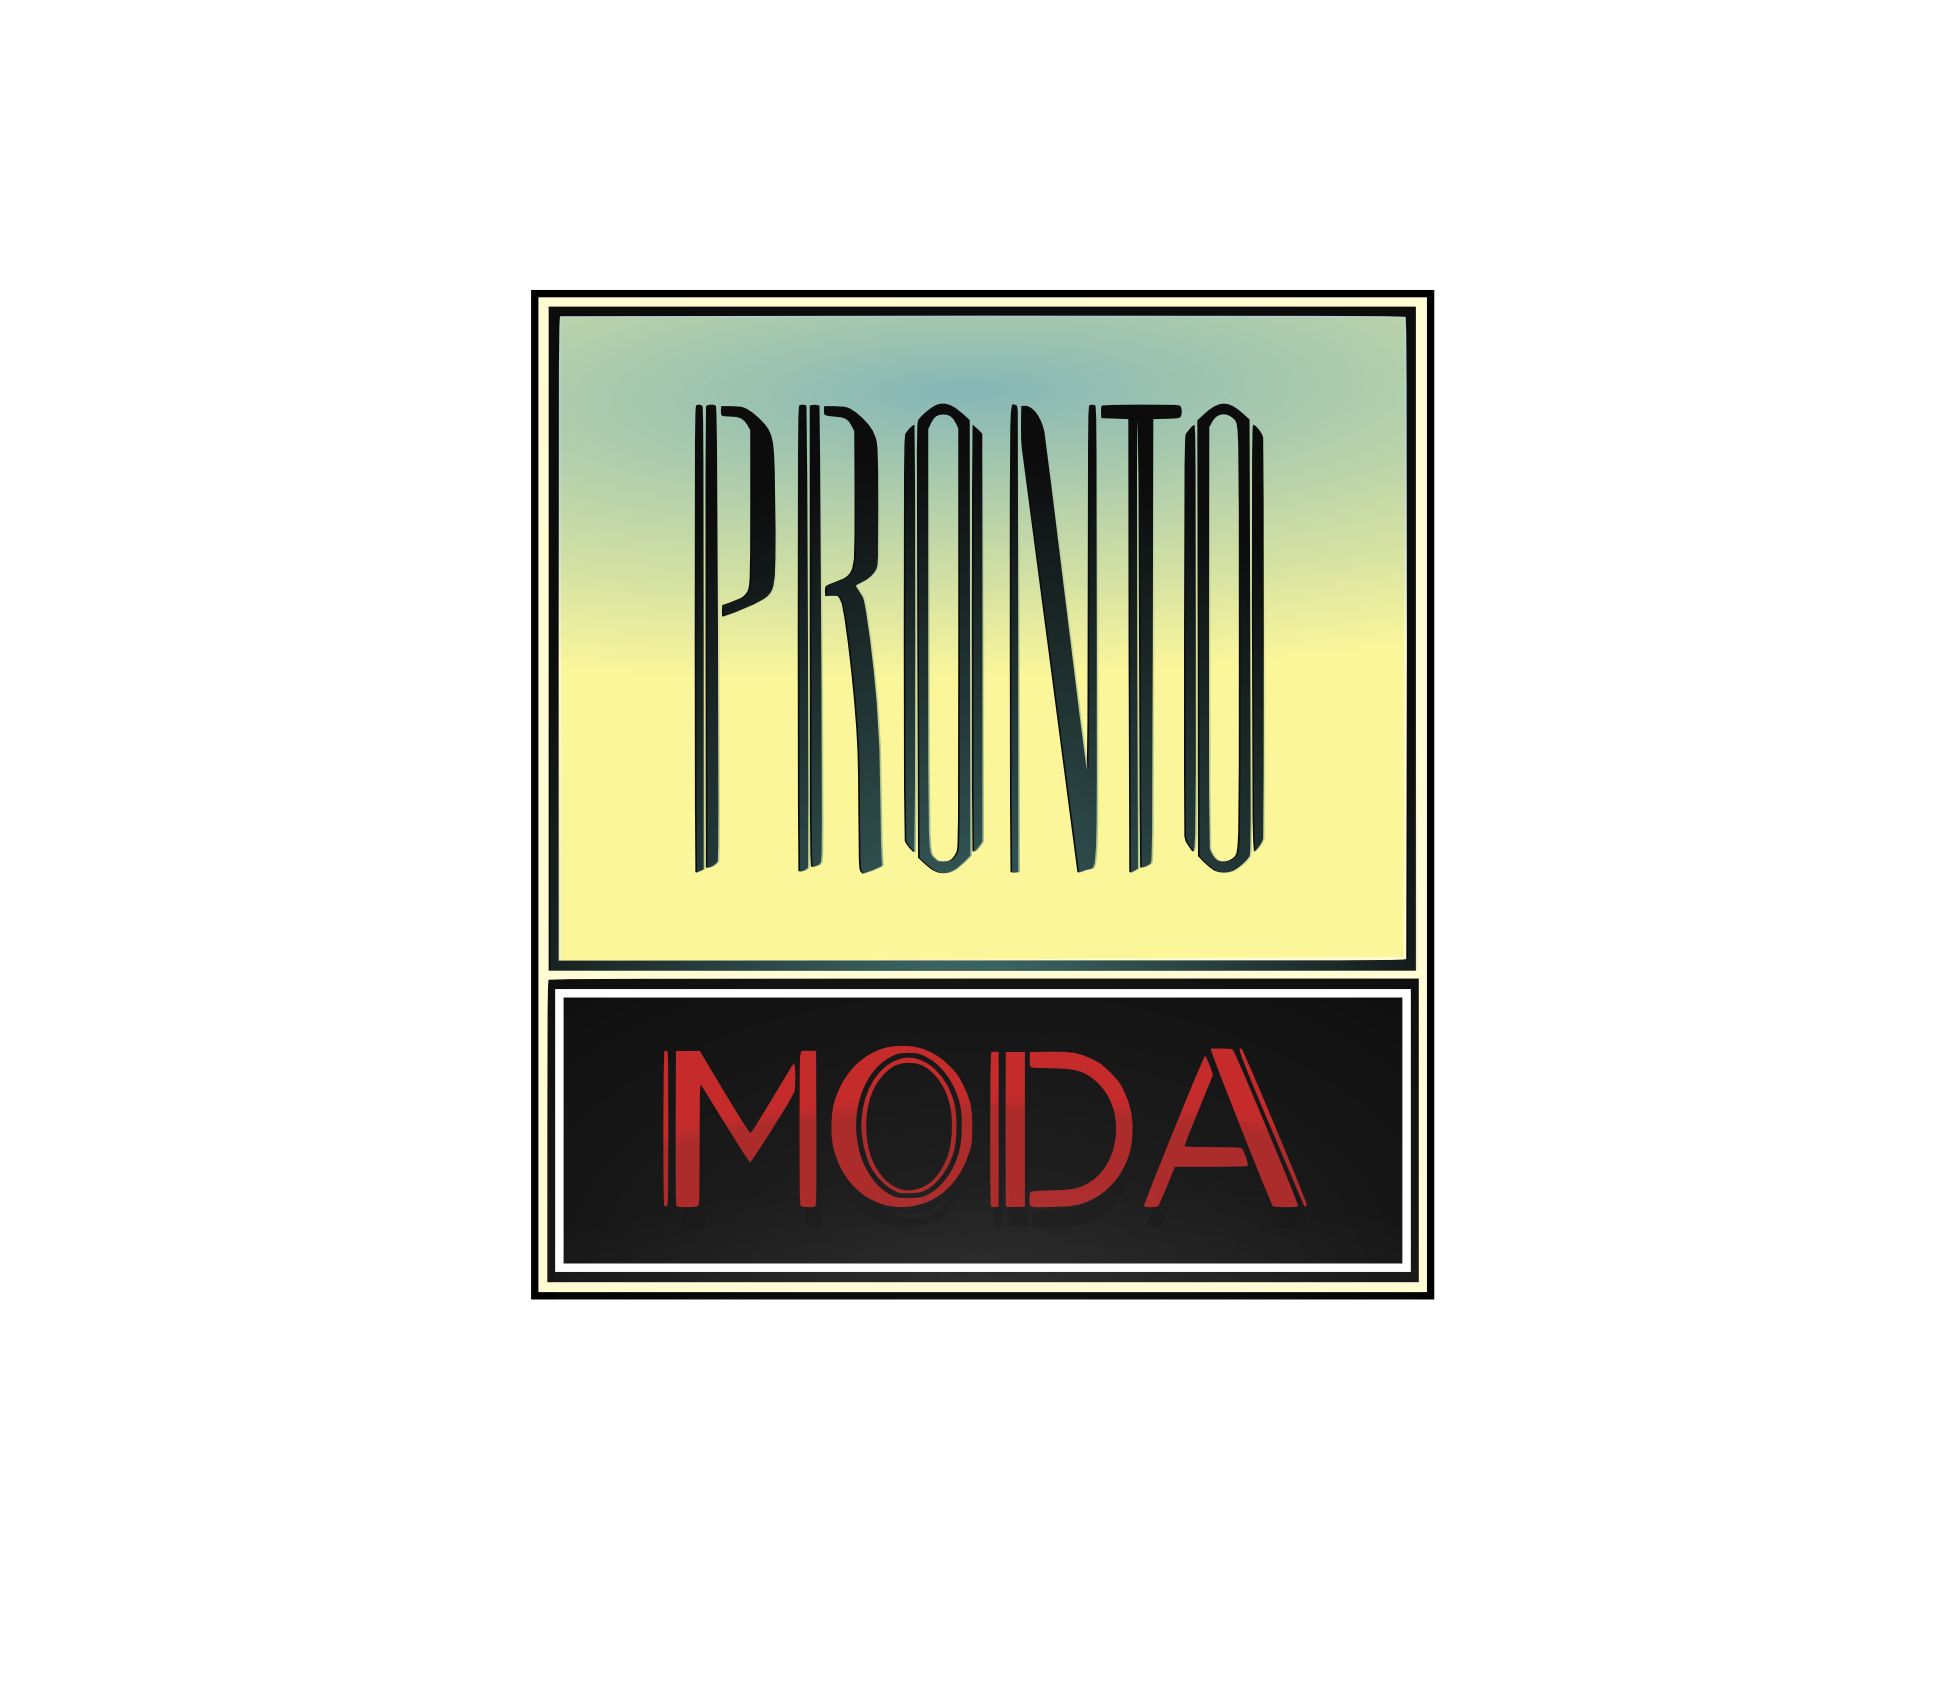 Logo Design by hanson306 - Entry No. 40 in the Logo Design Contest Captivating Logo Design for Pronto moda.